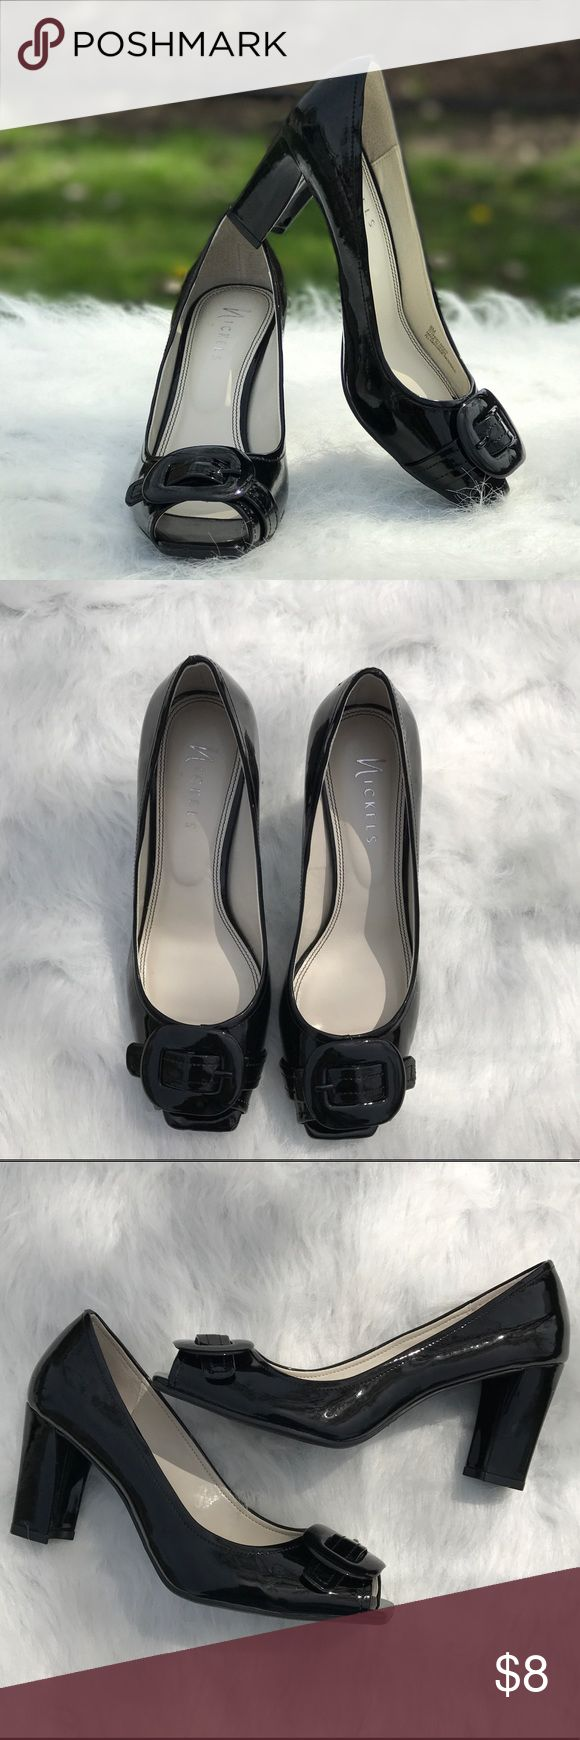 Black peep toe pumps Very sophisticated back pumps. Peep toes with bow detail. Chunky heel for comfort. Great for work or dinner date. nickels Shoes Heels